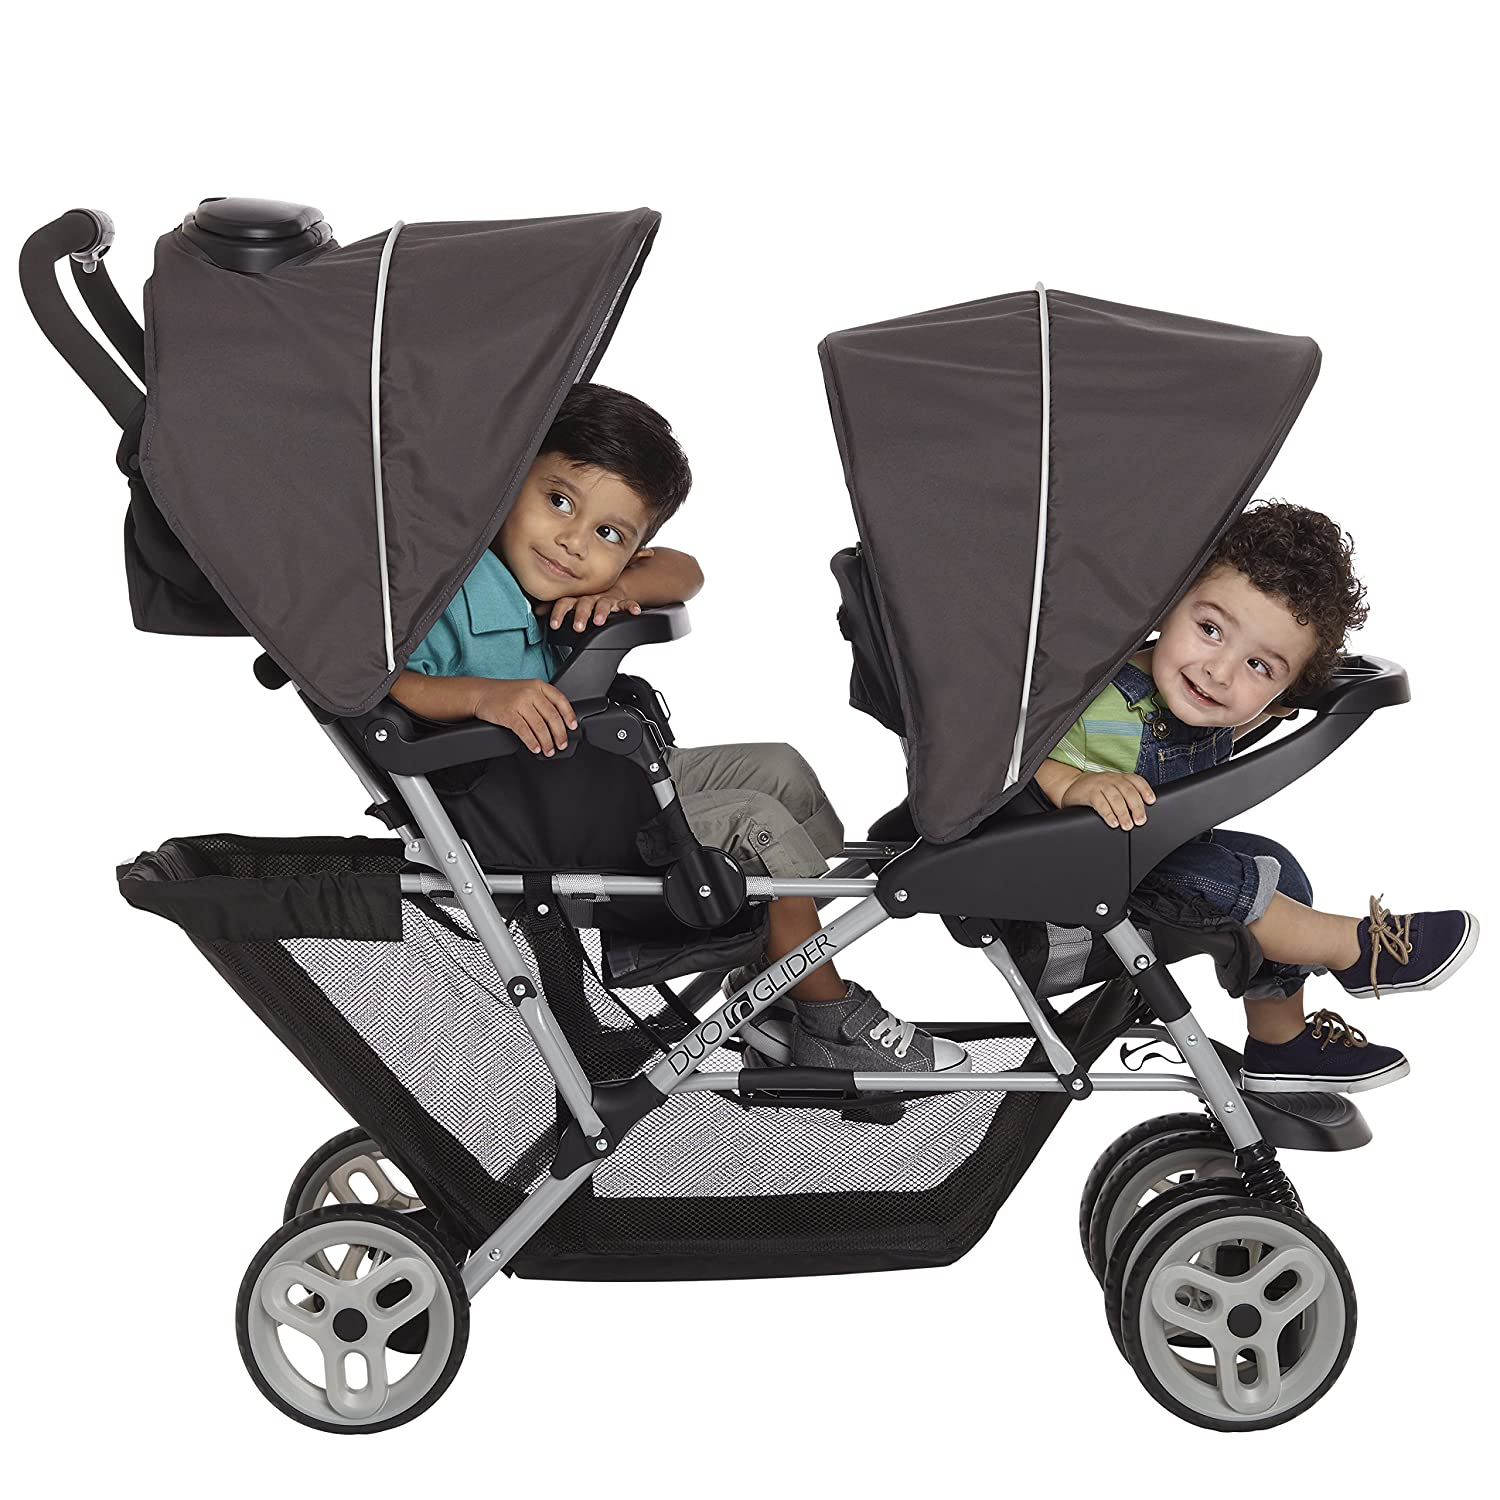 Graco DuoGlider Double Stroller2